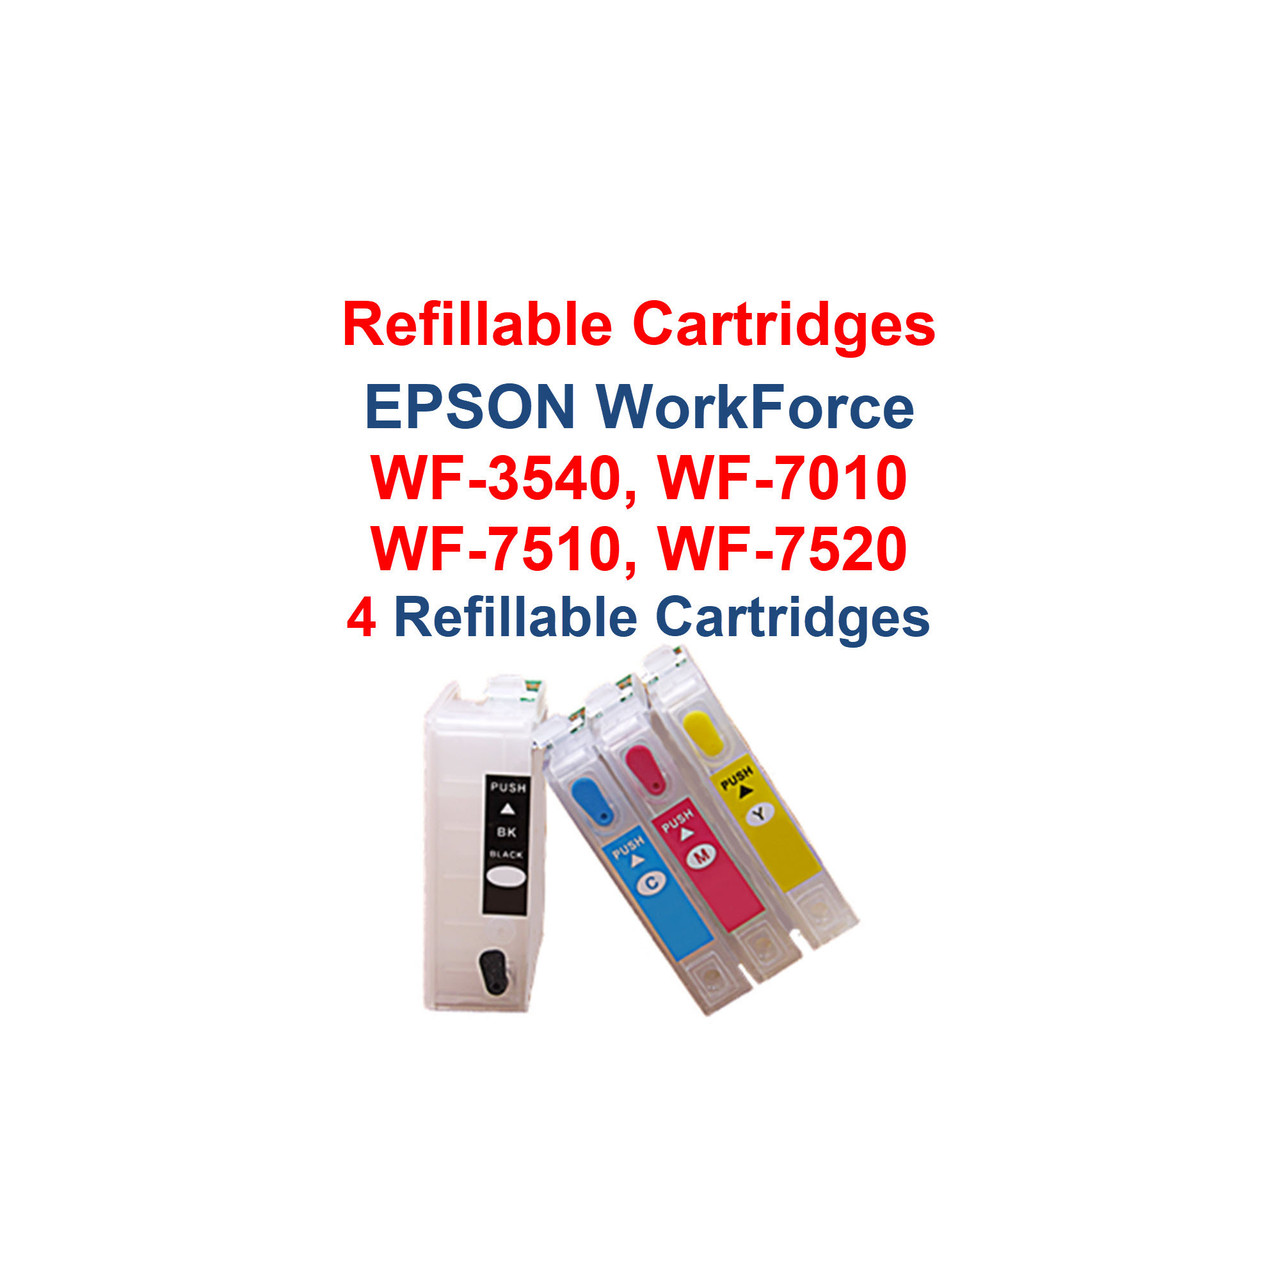 Refillable Ink Cartridges with auto reset chips for Epson WorkForce models:  WF-3540 printer  WF-7010 printer  WF-7510 printer  WF-7520 printer   Package includes: 4 - Refillable Ink Cartridges with auto reset chips   Compatible with OEM cartridges:  T127120  T127220  T127320  T127420 and 4 - Syringes for filling cartridges  Our Refillable Cartridges have a Auto Reset Chip installed on them, no chip re-setter is needed   >>> Los Angeles same day delivery available (Contact us for pricing) <<<